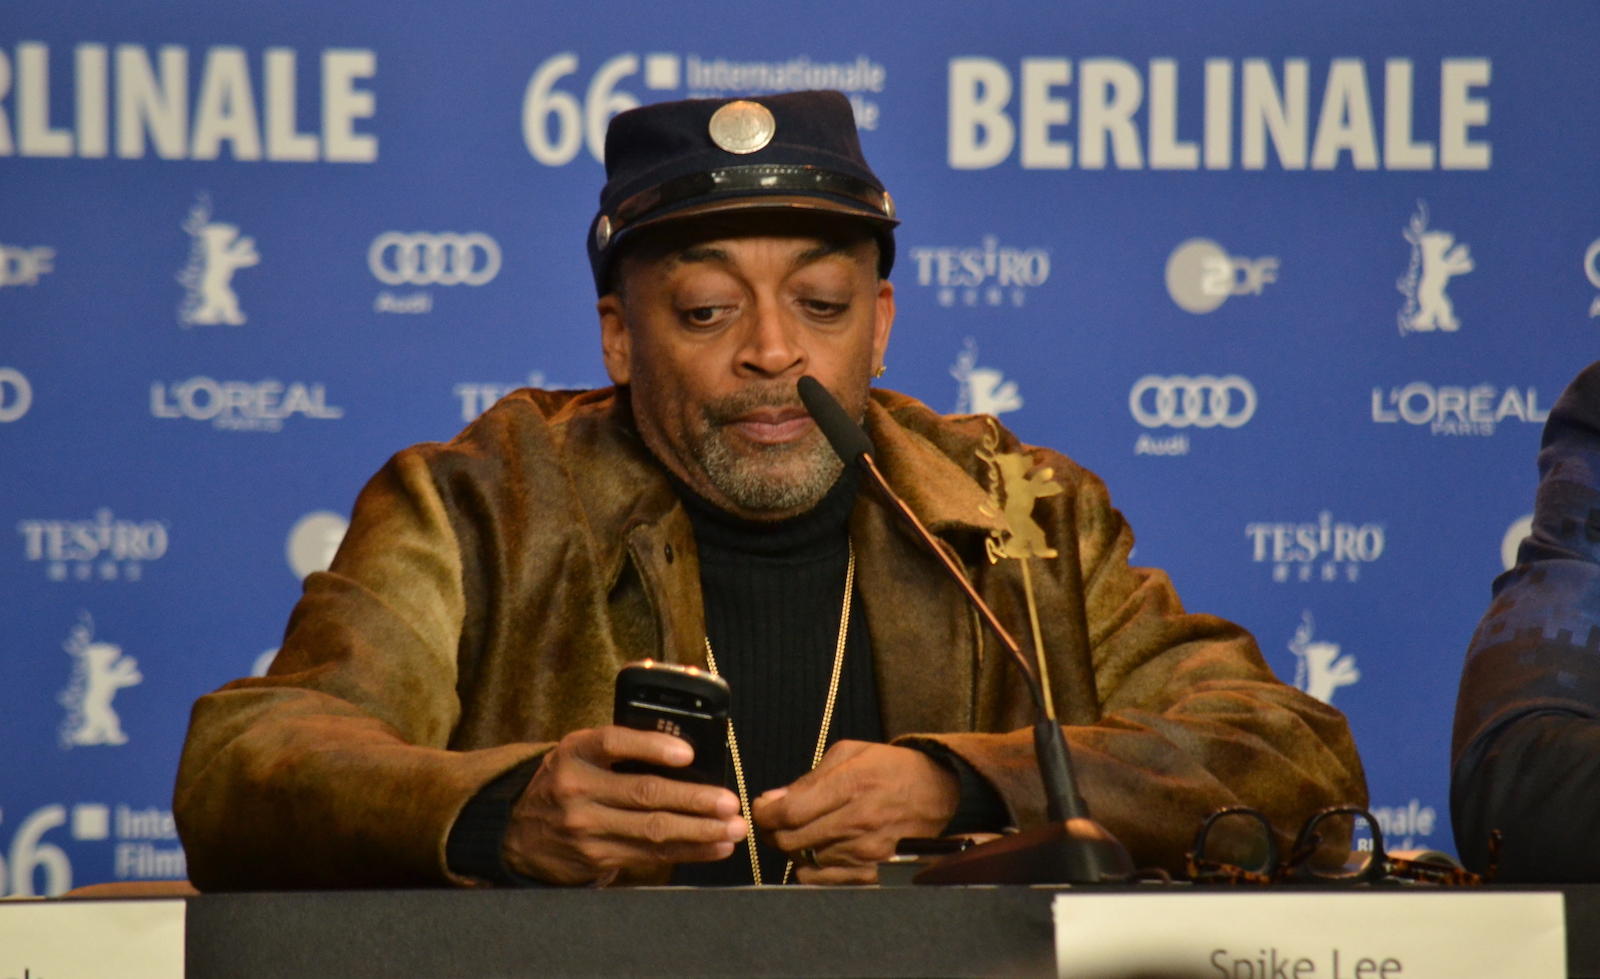 Berlino 2016: Spike Lee alla conferenza di Chi-Raq